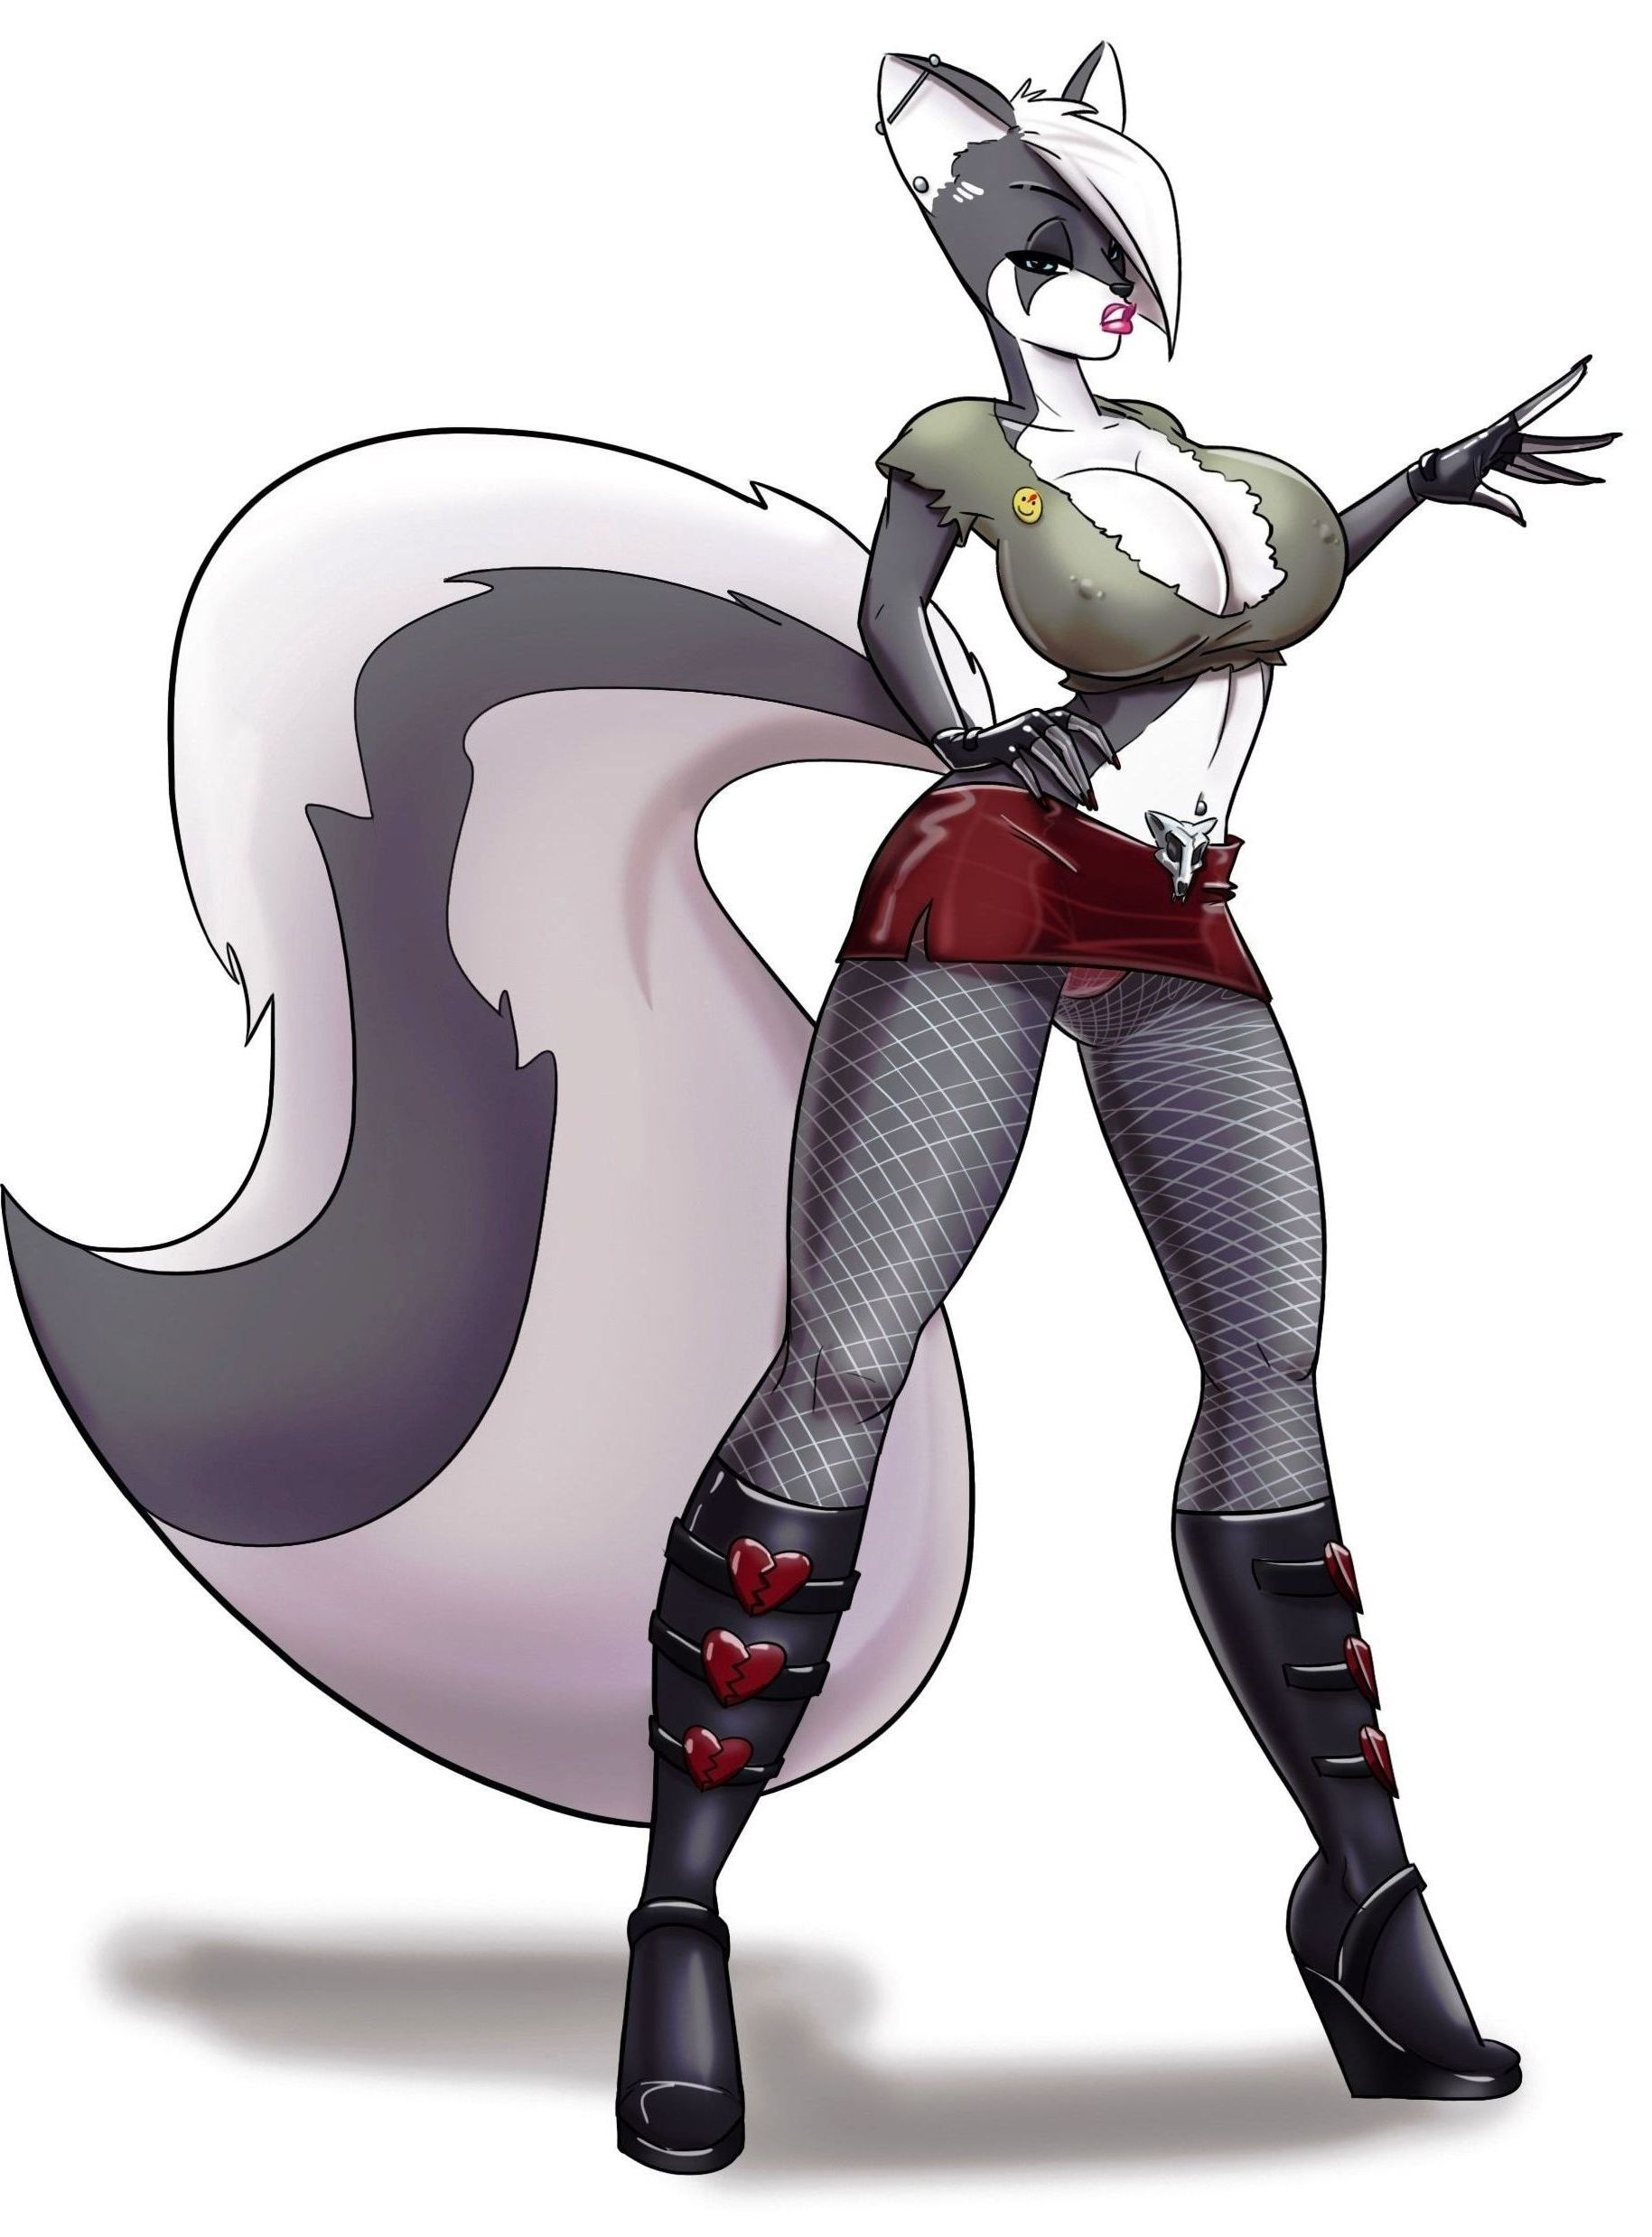 Animated Skirt skunk in green top & red skirt. | anime, cartoon, animation